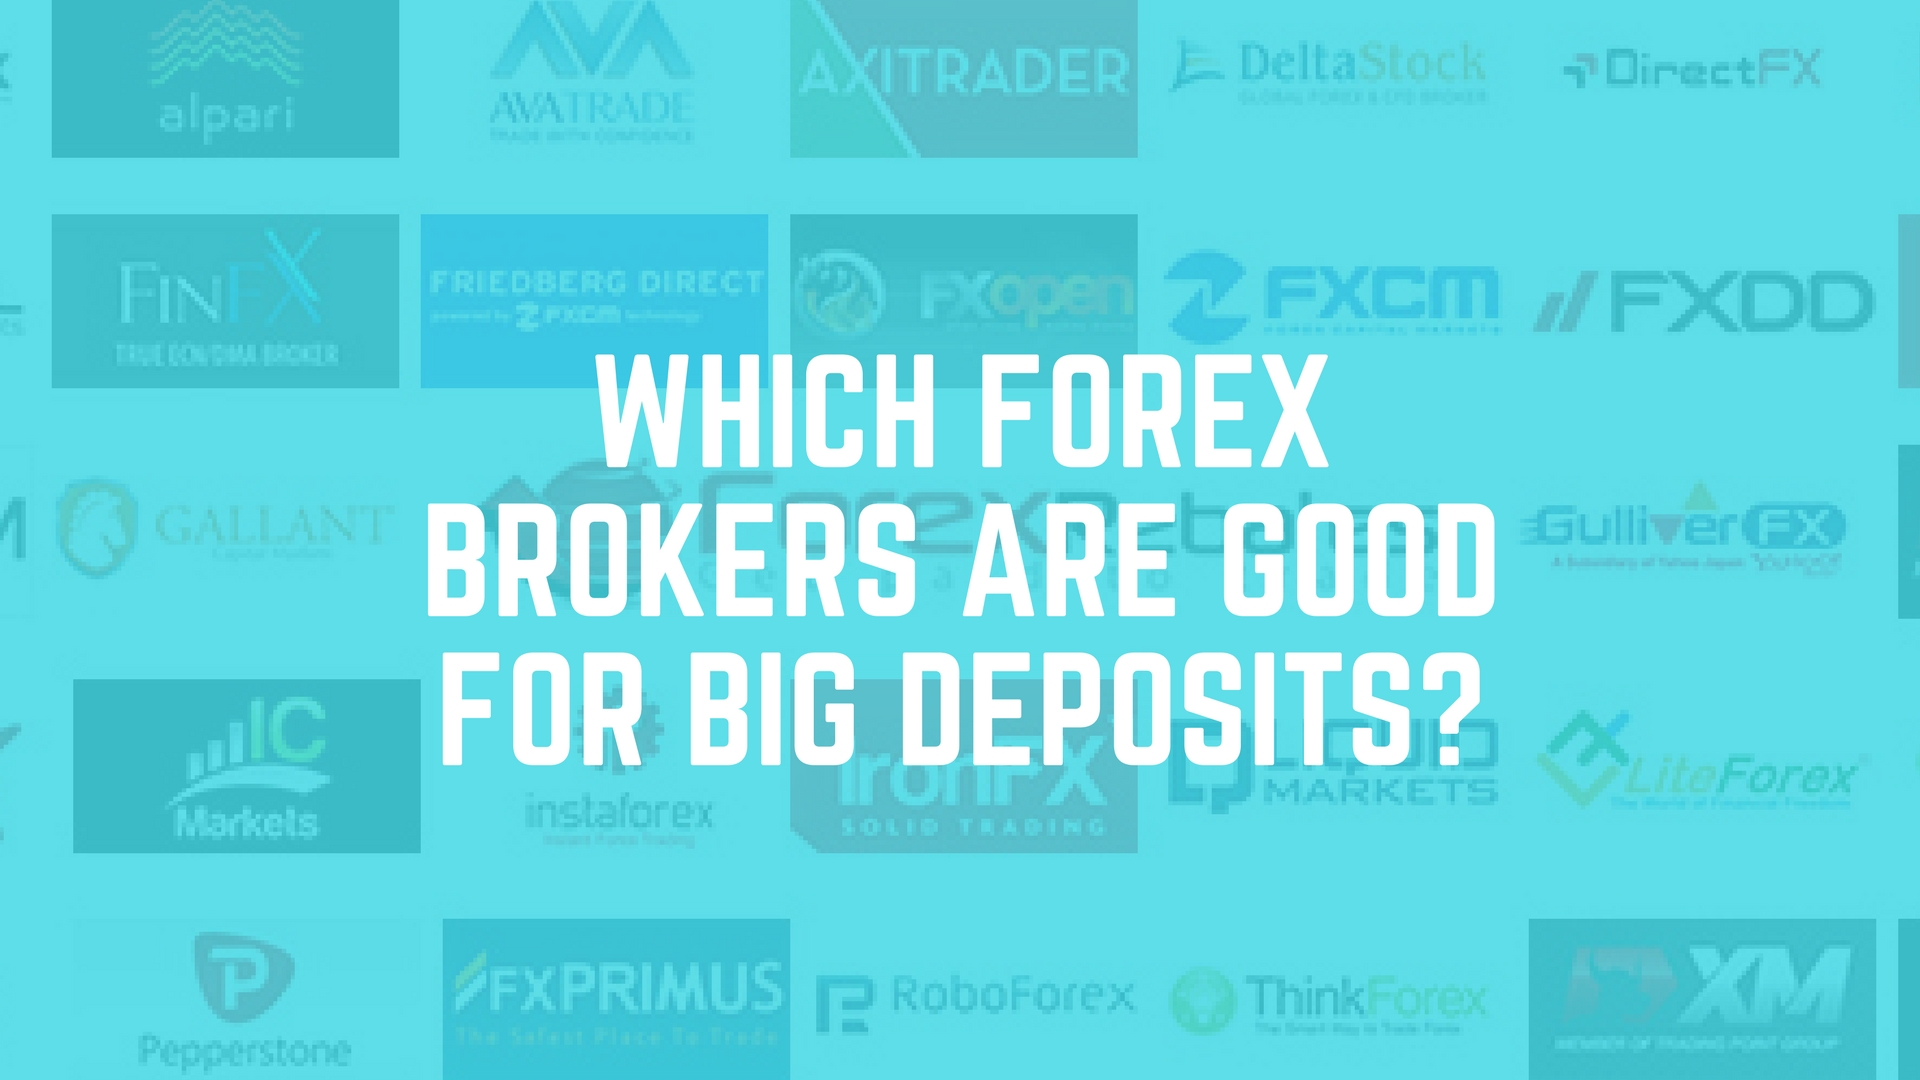 Big forex brokers